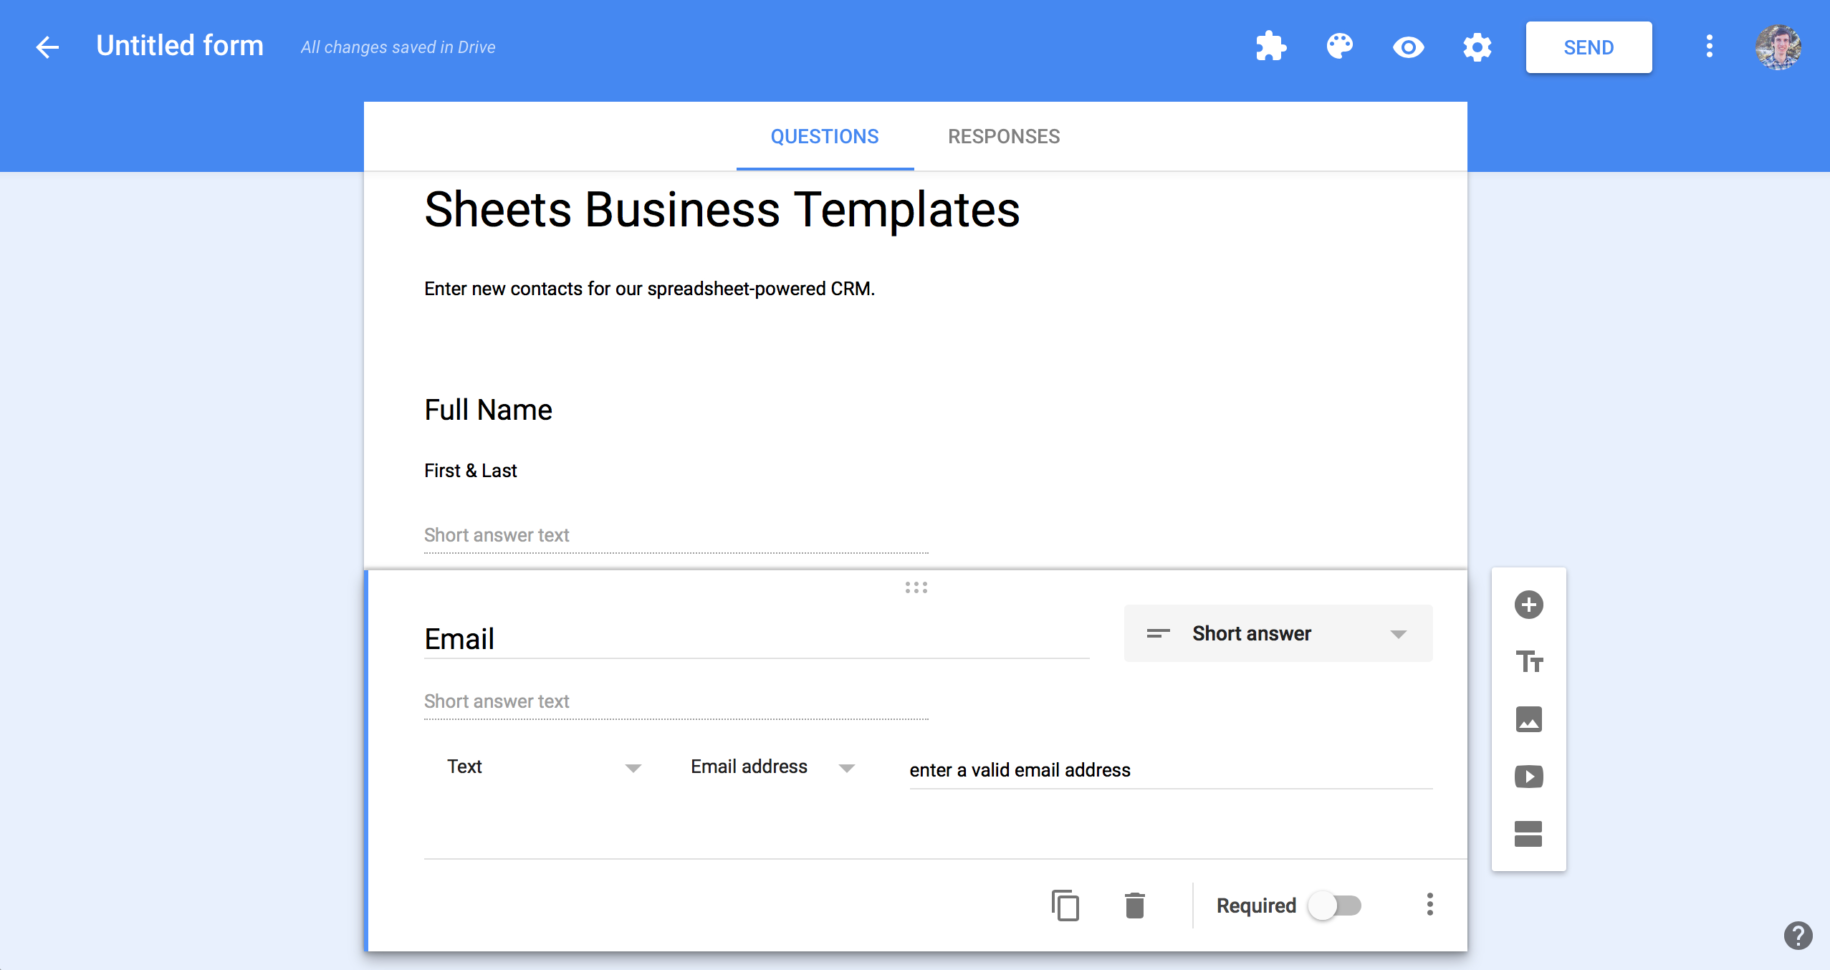 Google Spreadsheet Invoice For Spreadsheet Crm: How To Create A Customizable Crm With Google Sheets